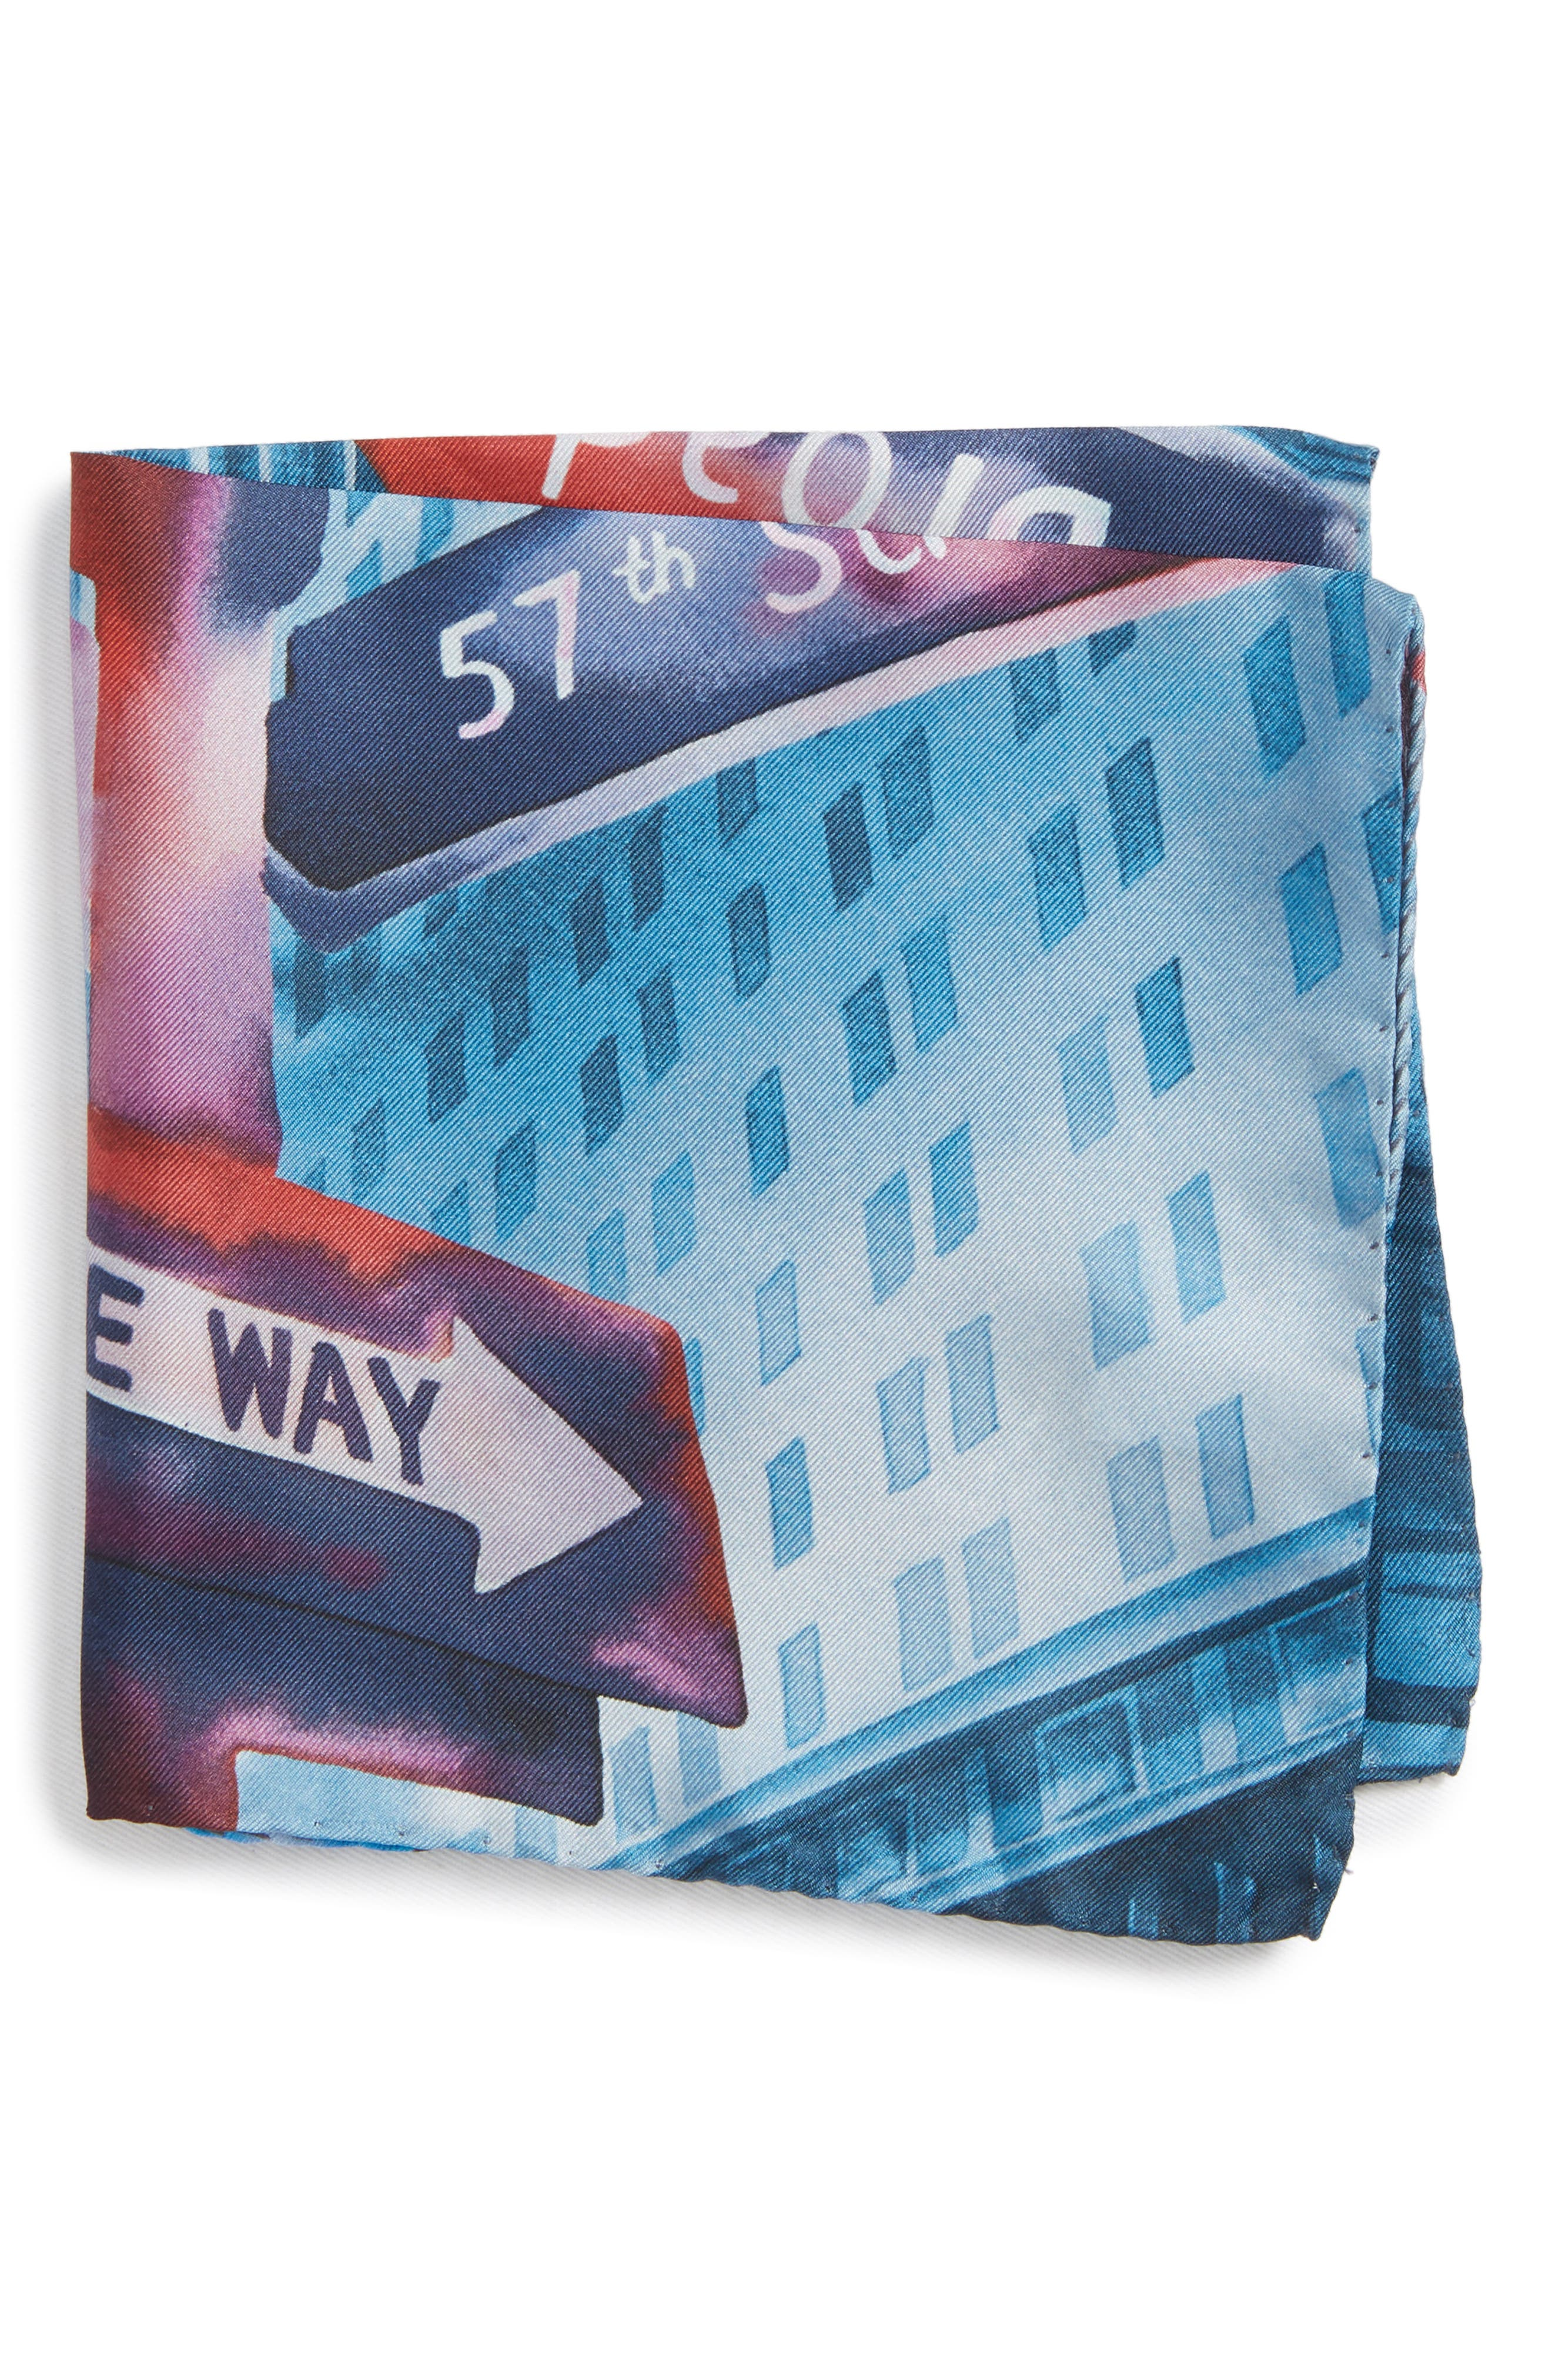 New York Store Silk Pocket Square,                         Main,                         color, Blue